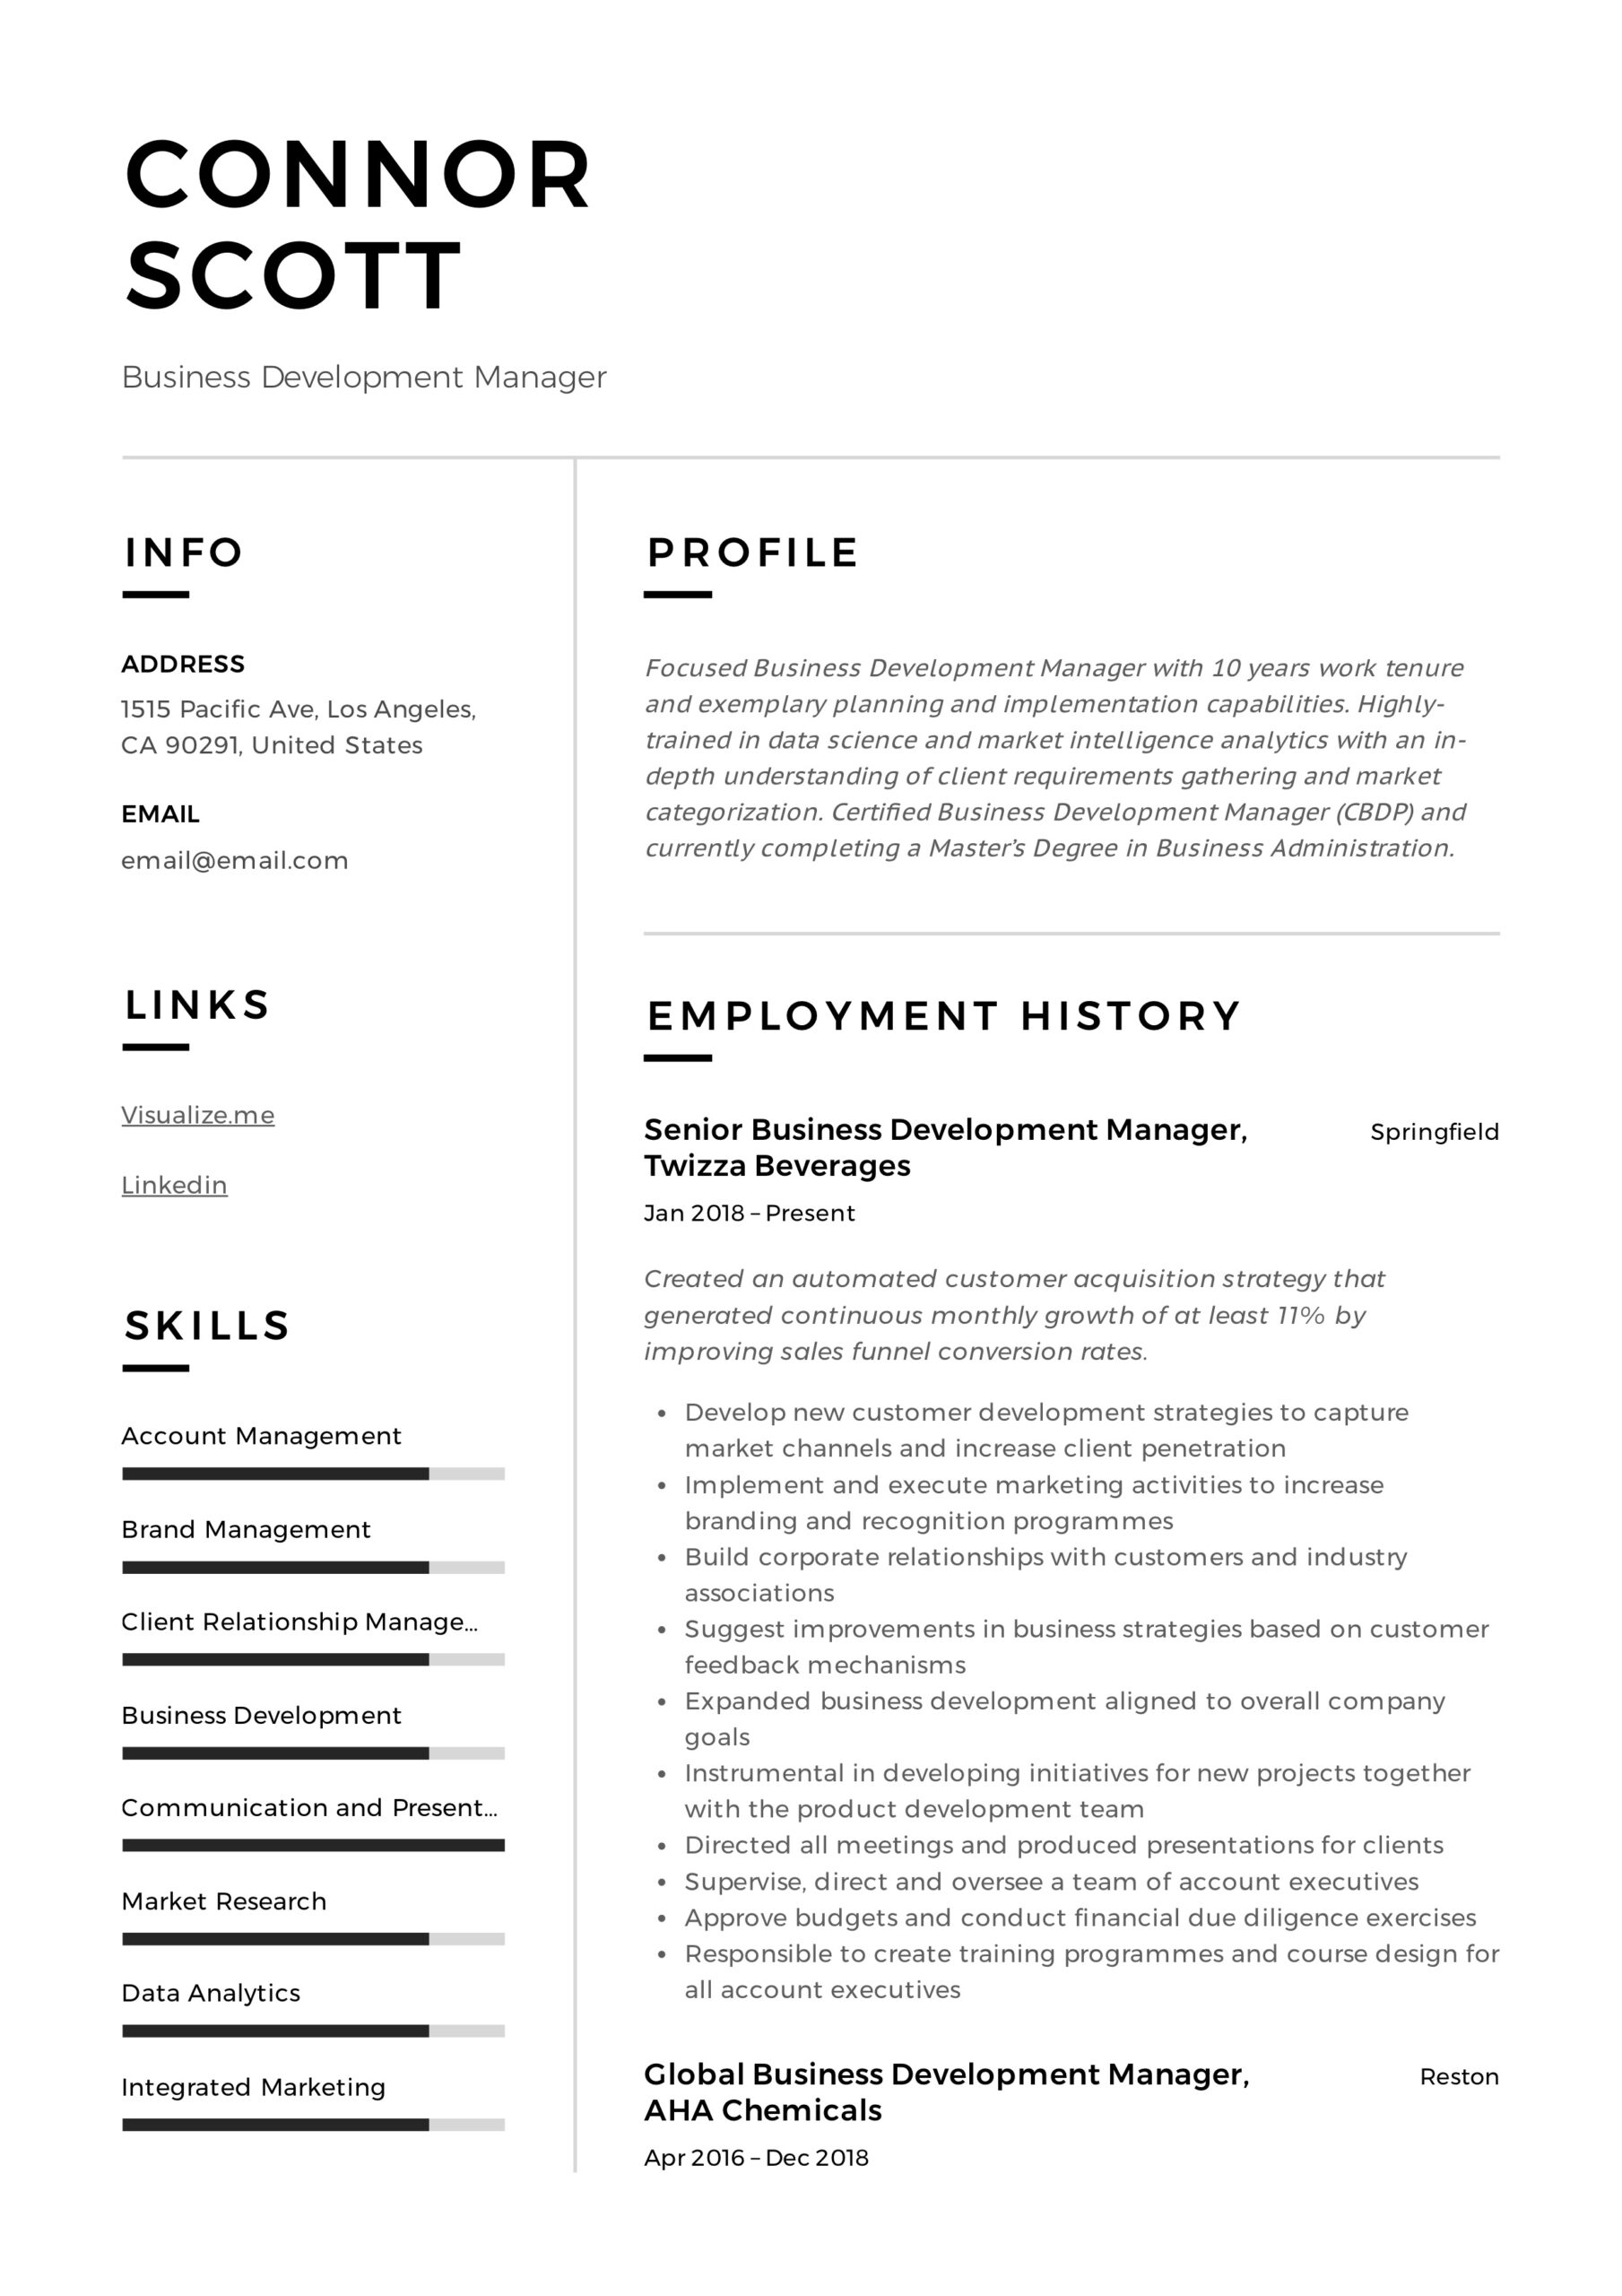 business development manager resume guide templates pdf associate degree example retail Resume Business Development Associate Resume